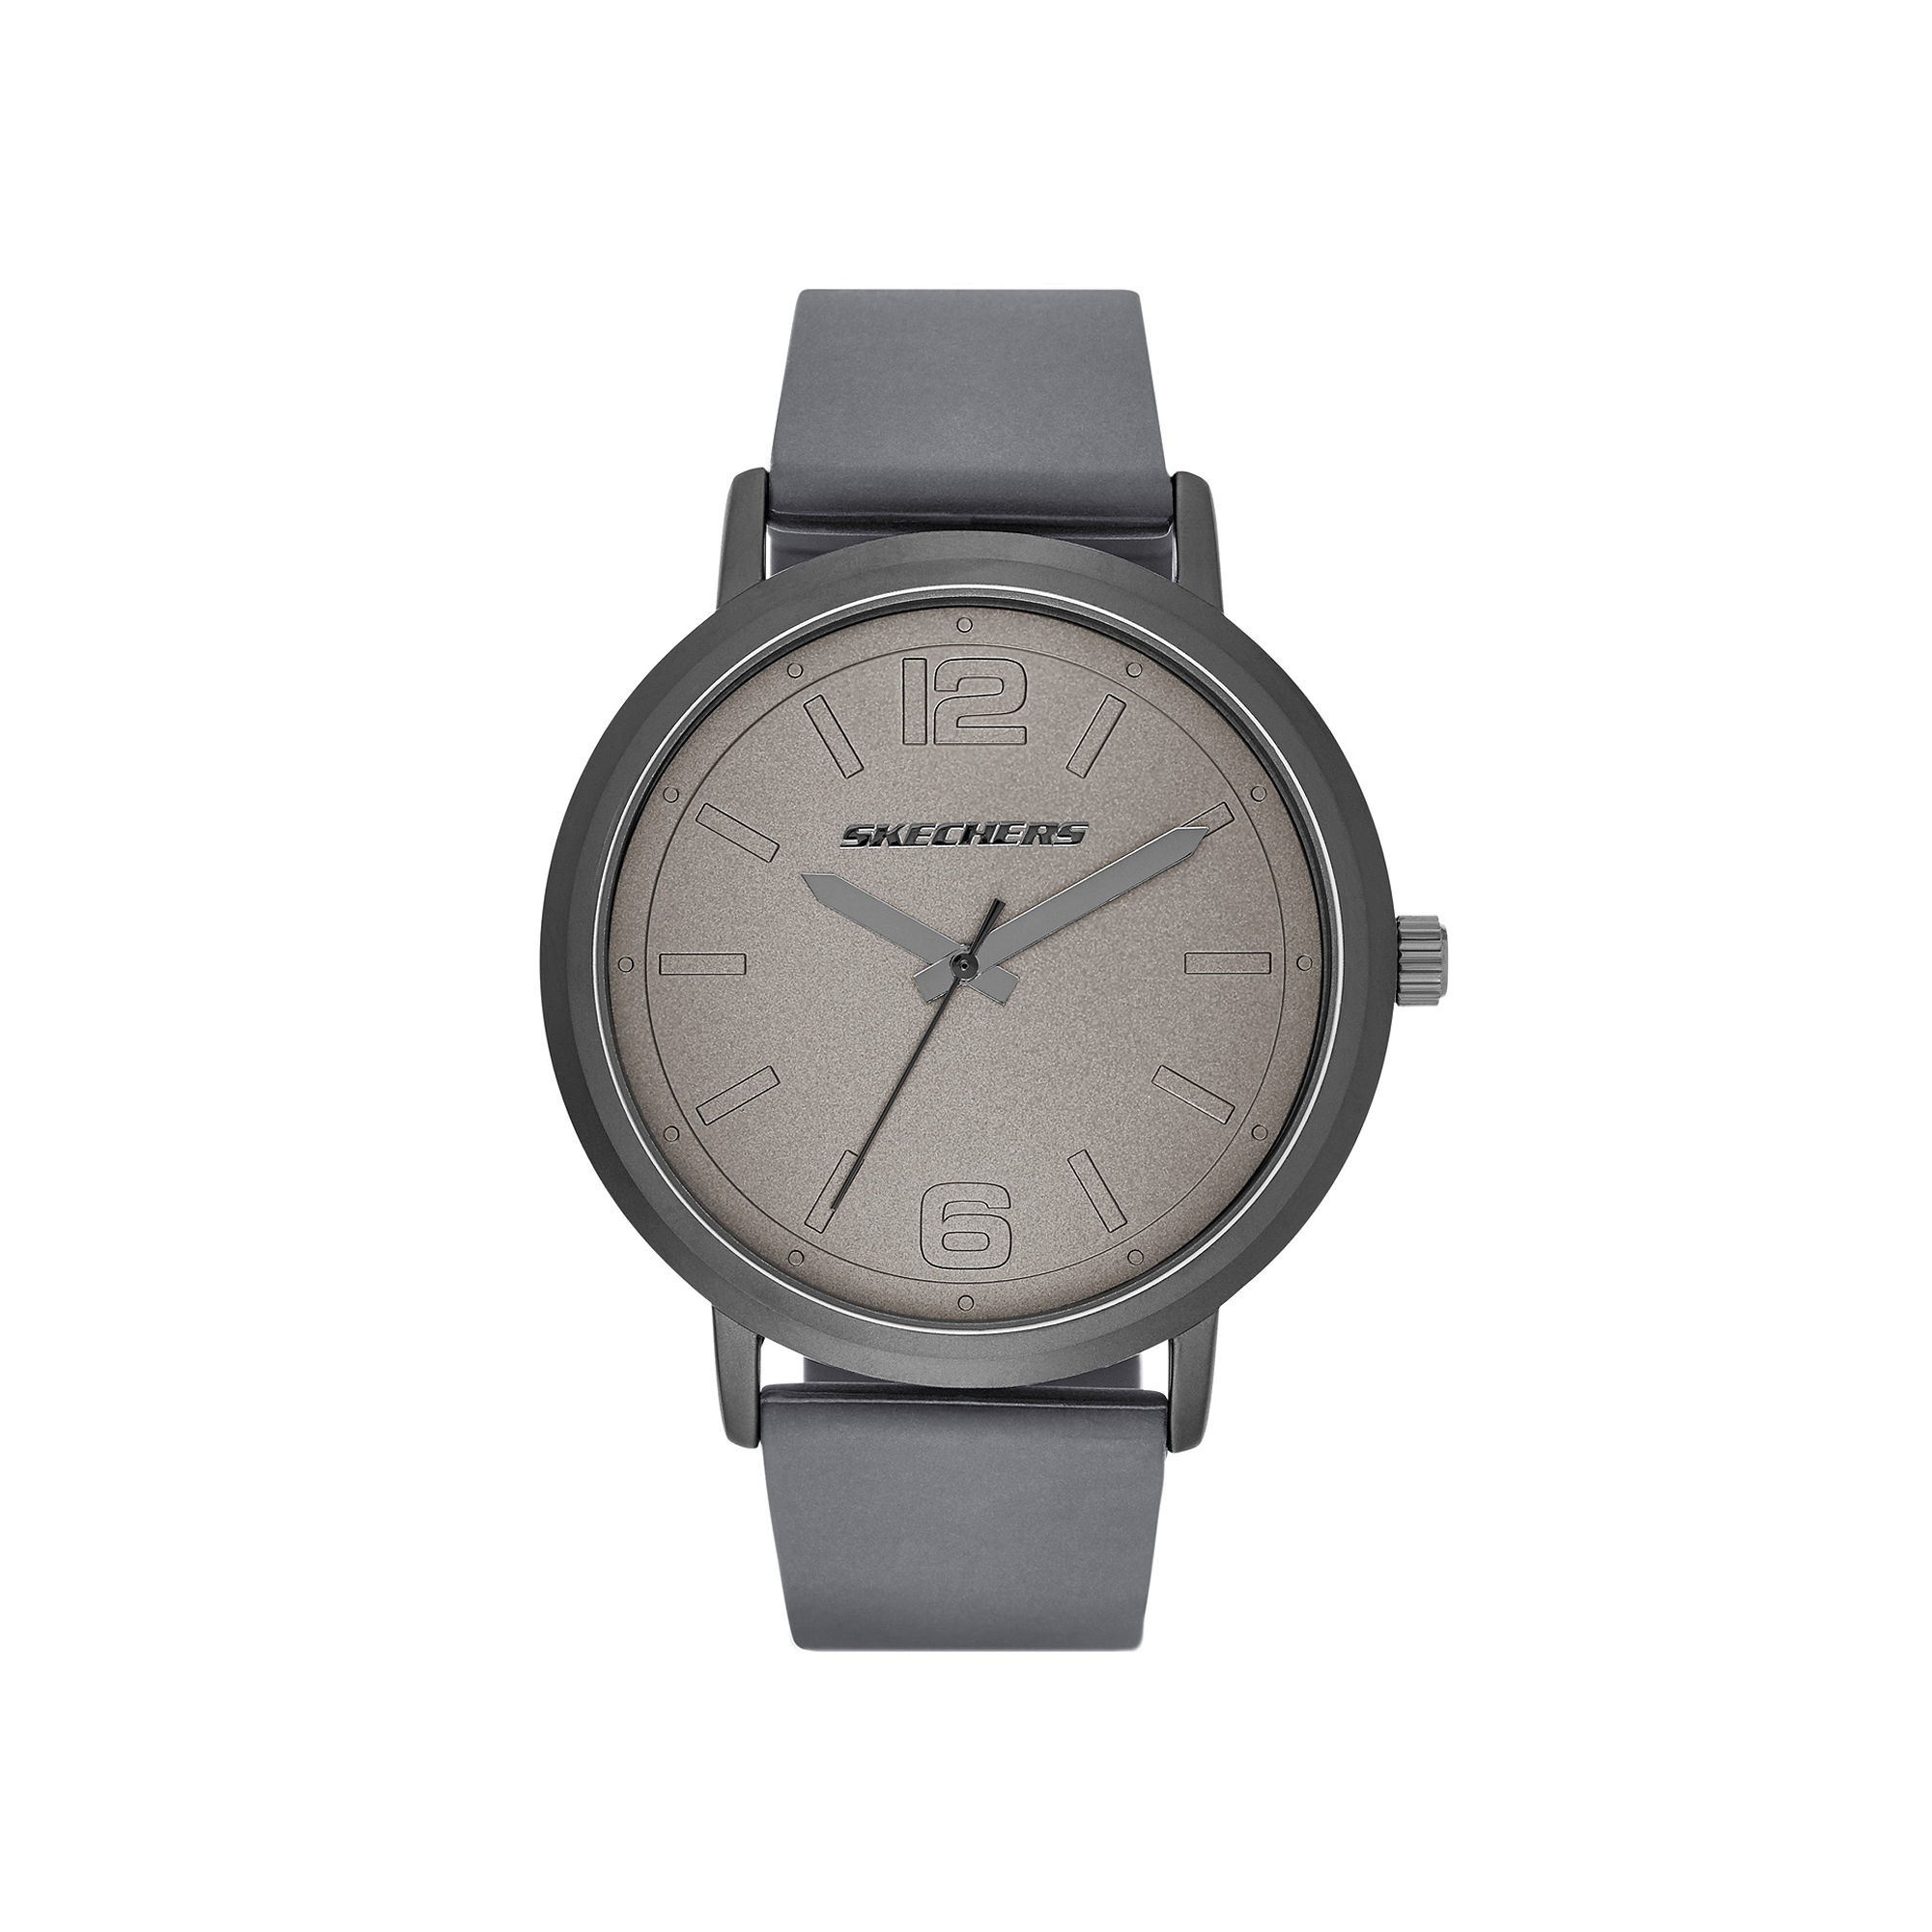 Skechers Mens Casual Gray Silicone Strap Analog Watch